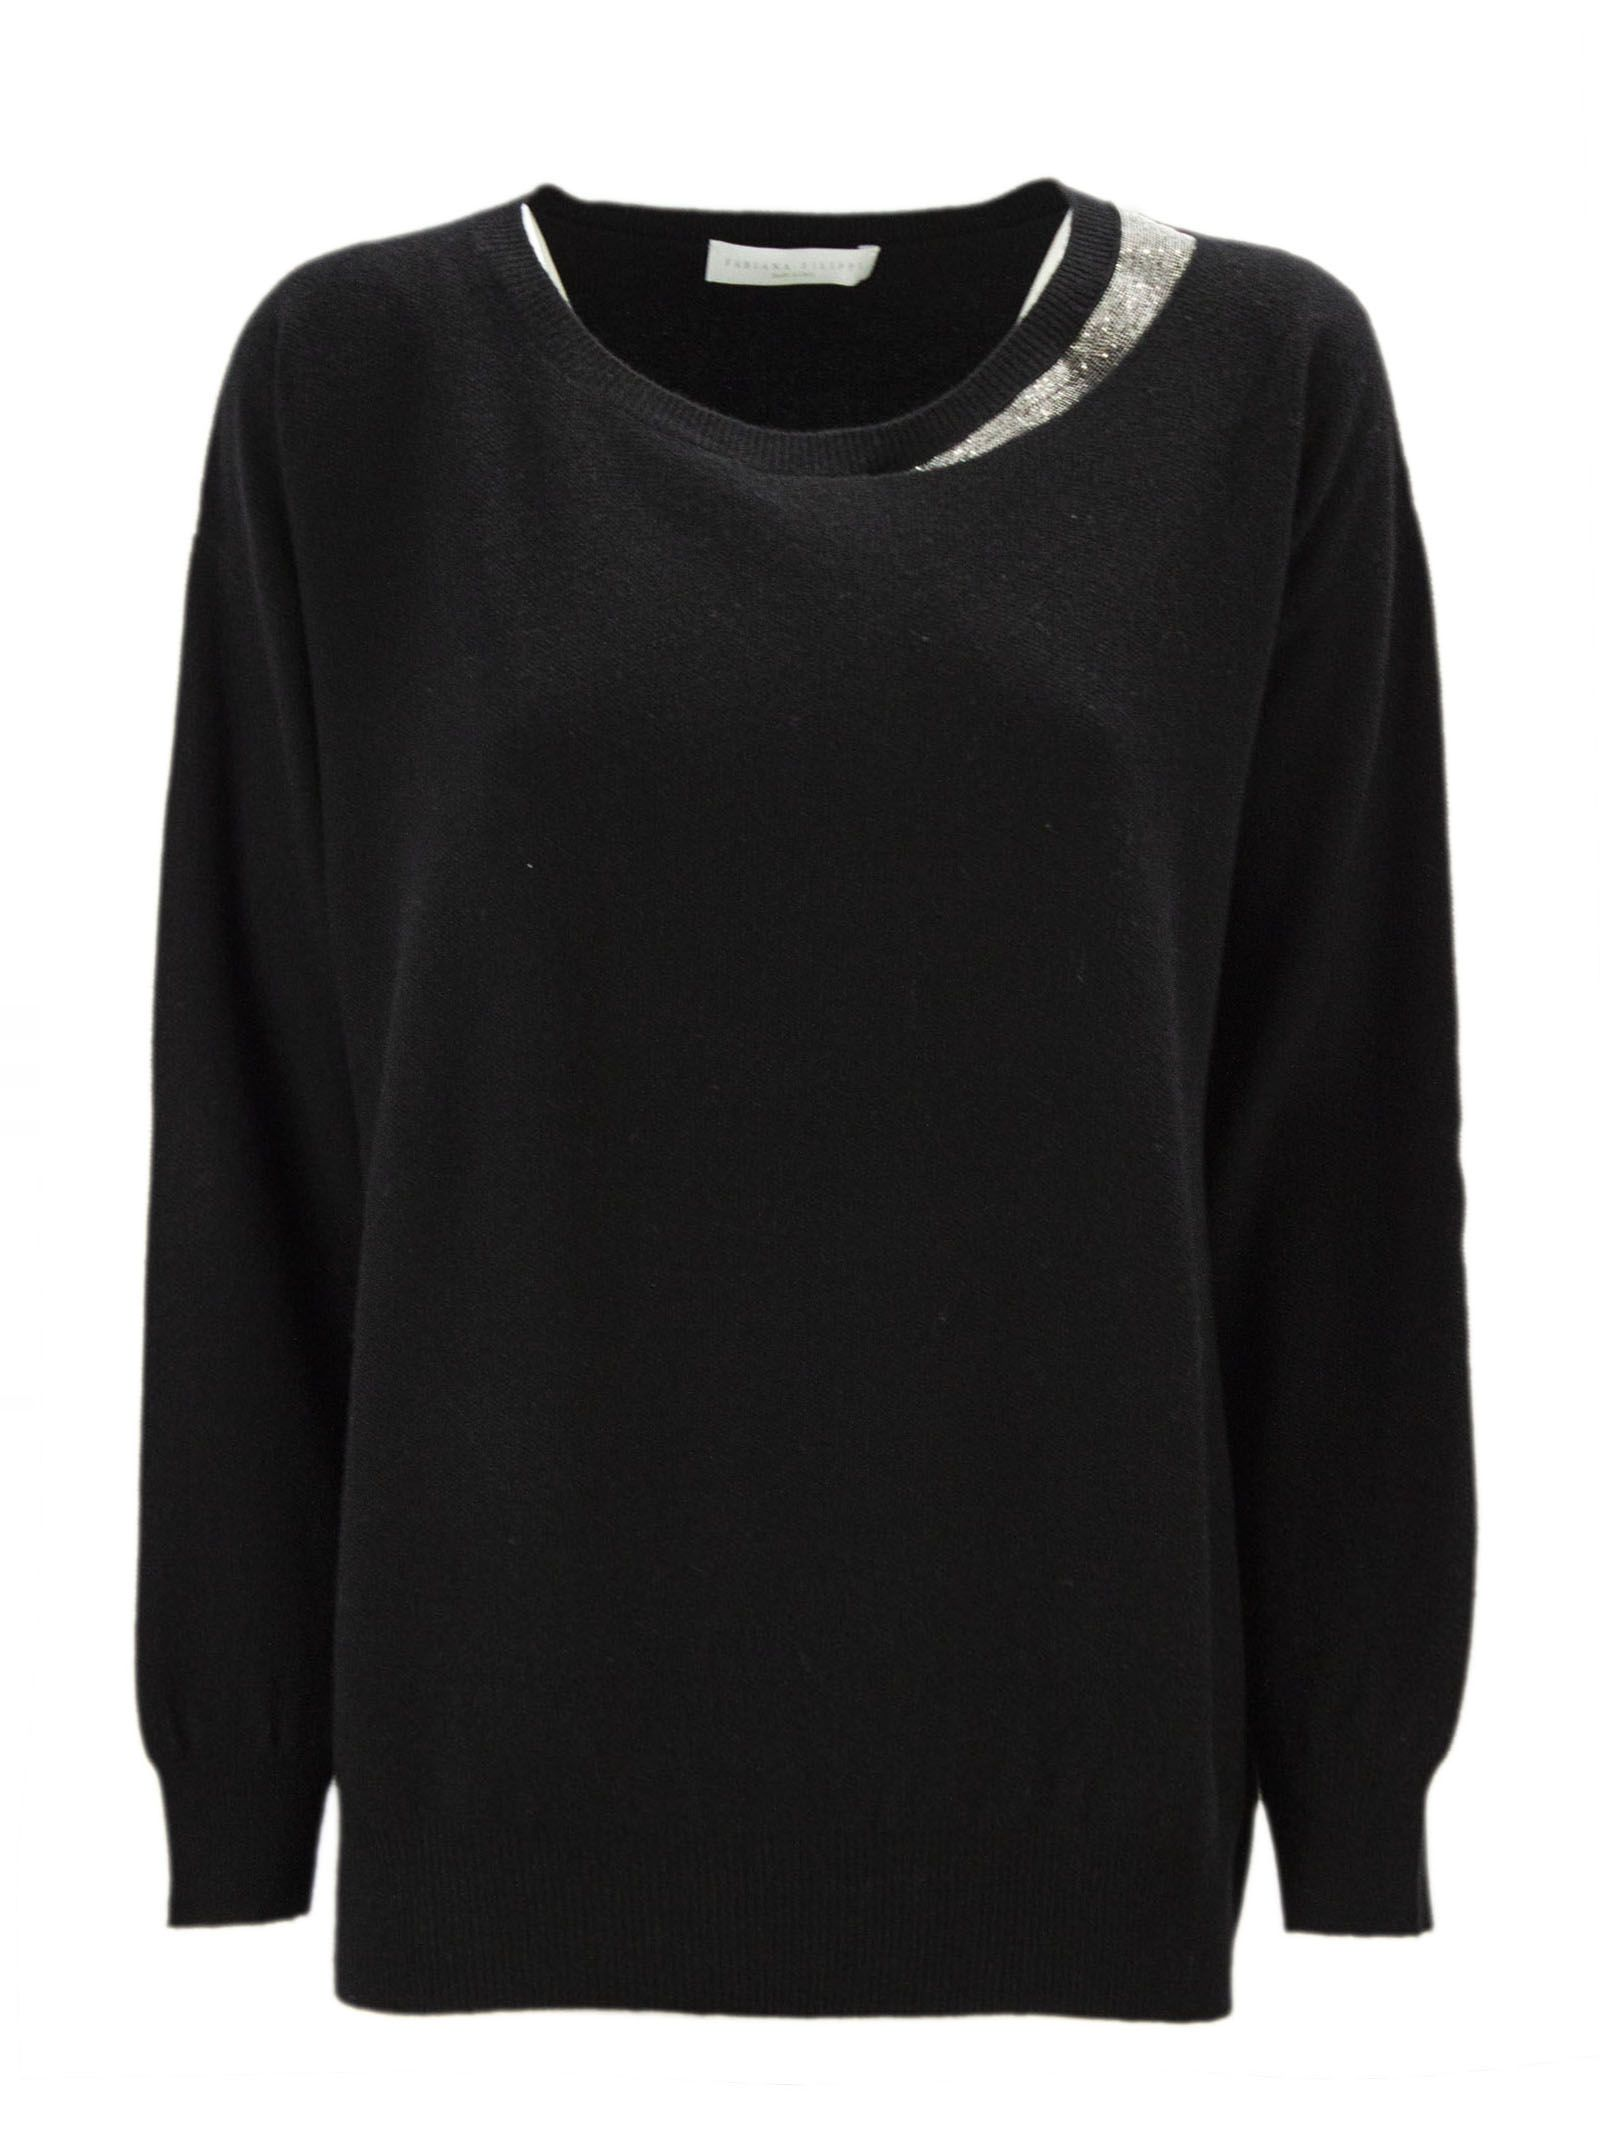 Fabiana Filippi Black Merino Wool Blend Jumper.